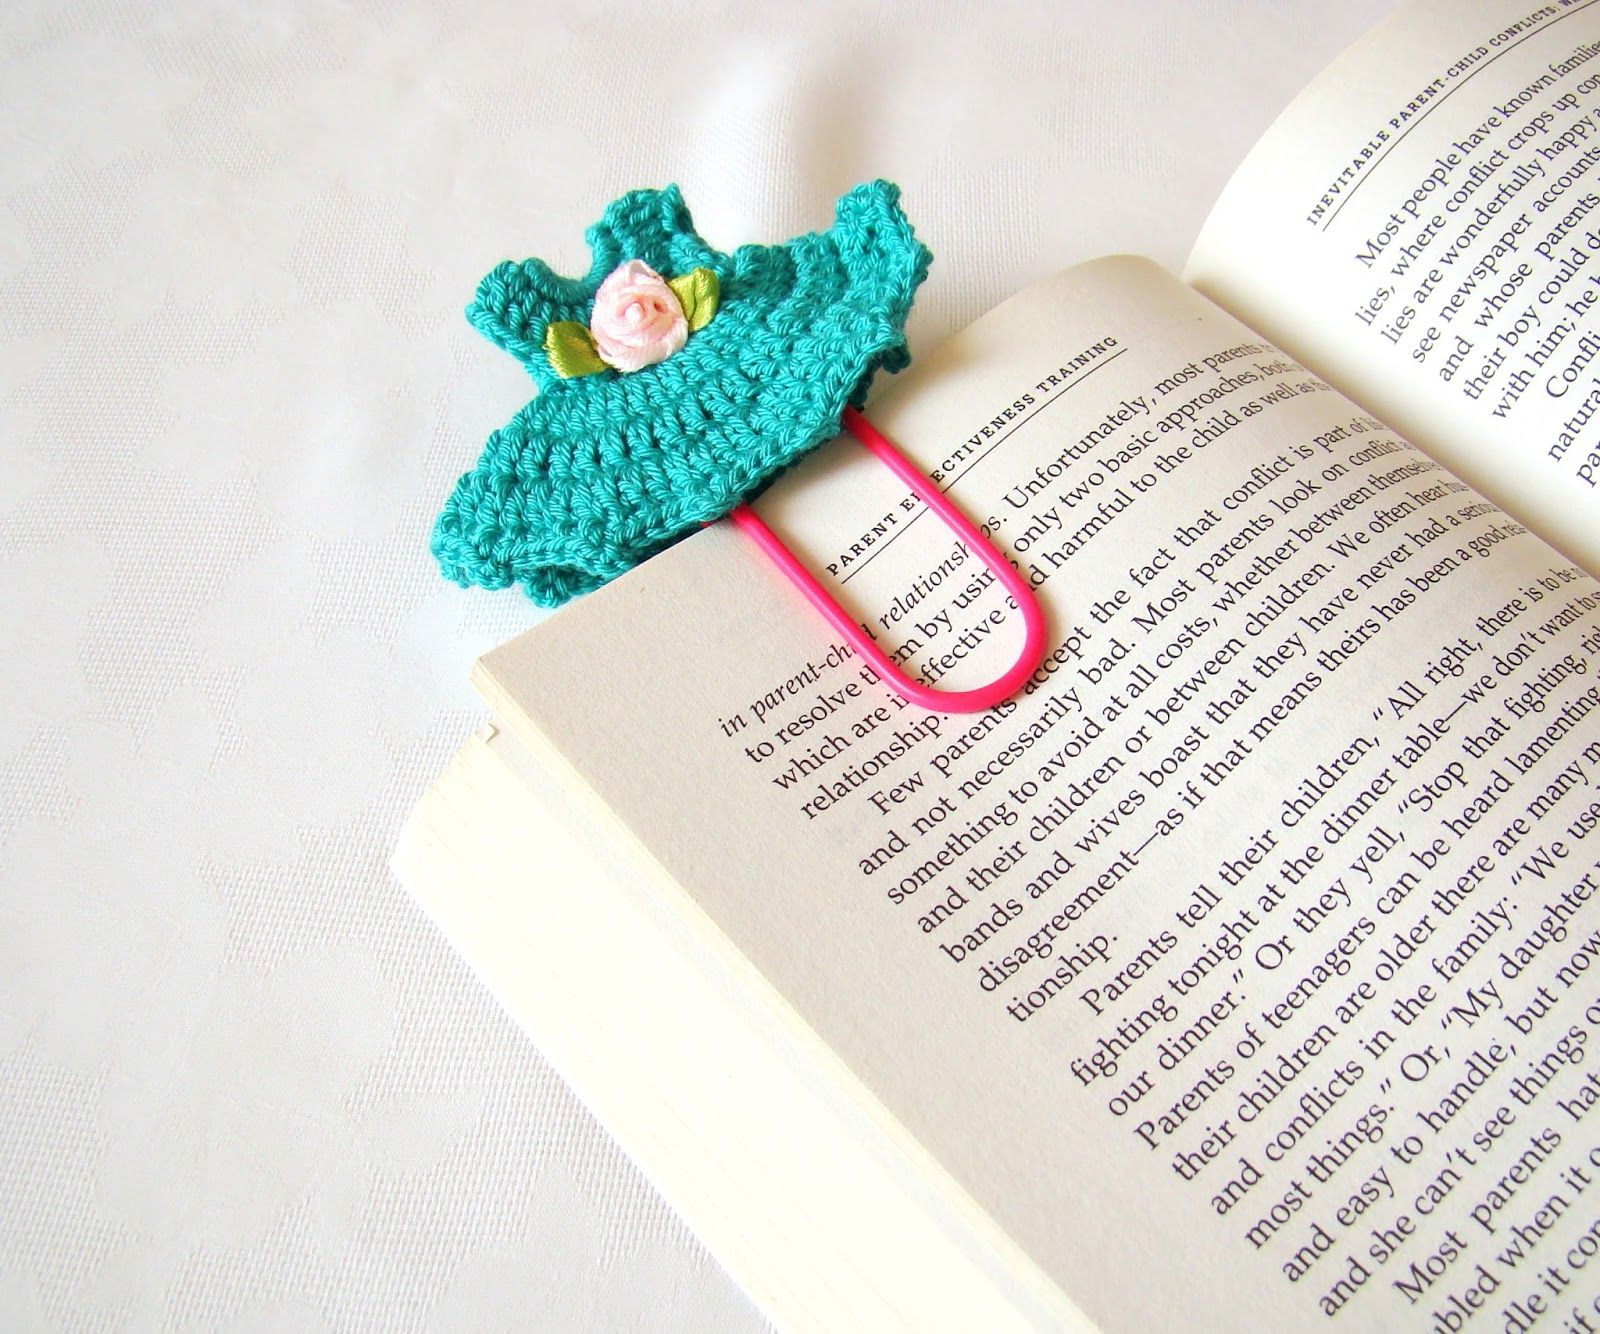 Crochet Bookmark Pattern ~ Pure Craft FREE PATTERN | CrochetHolic ...